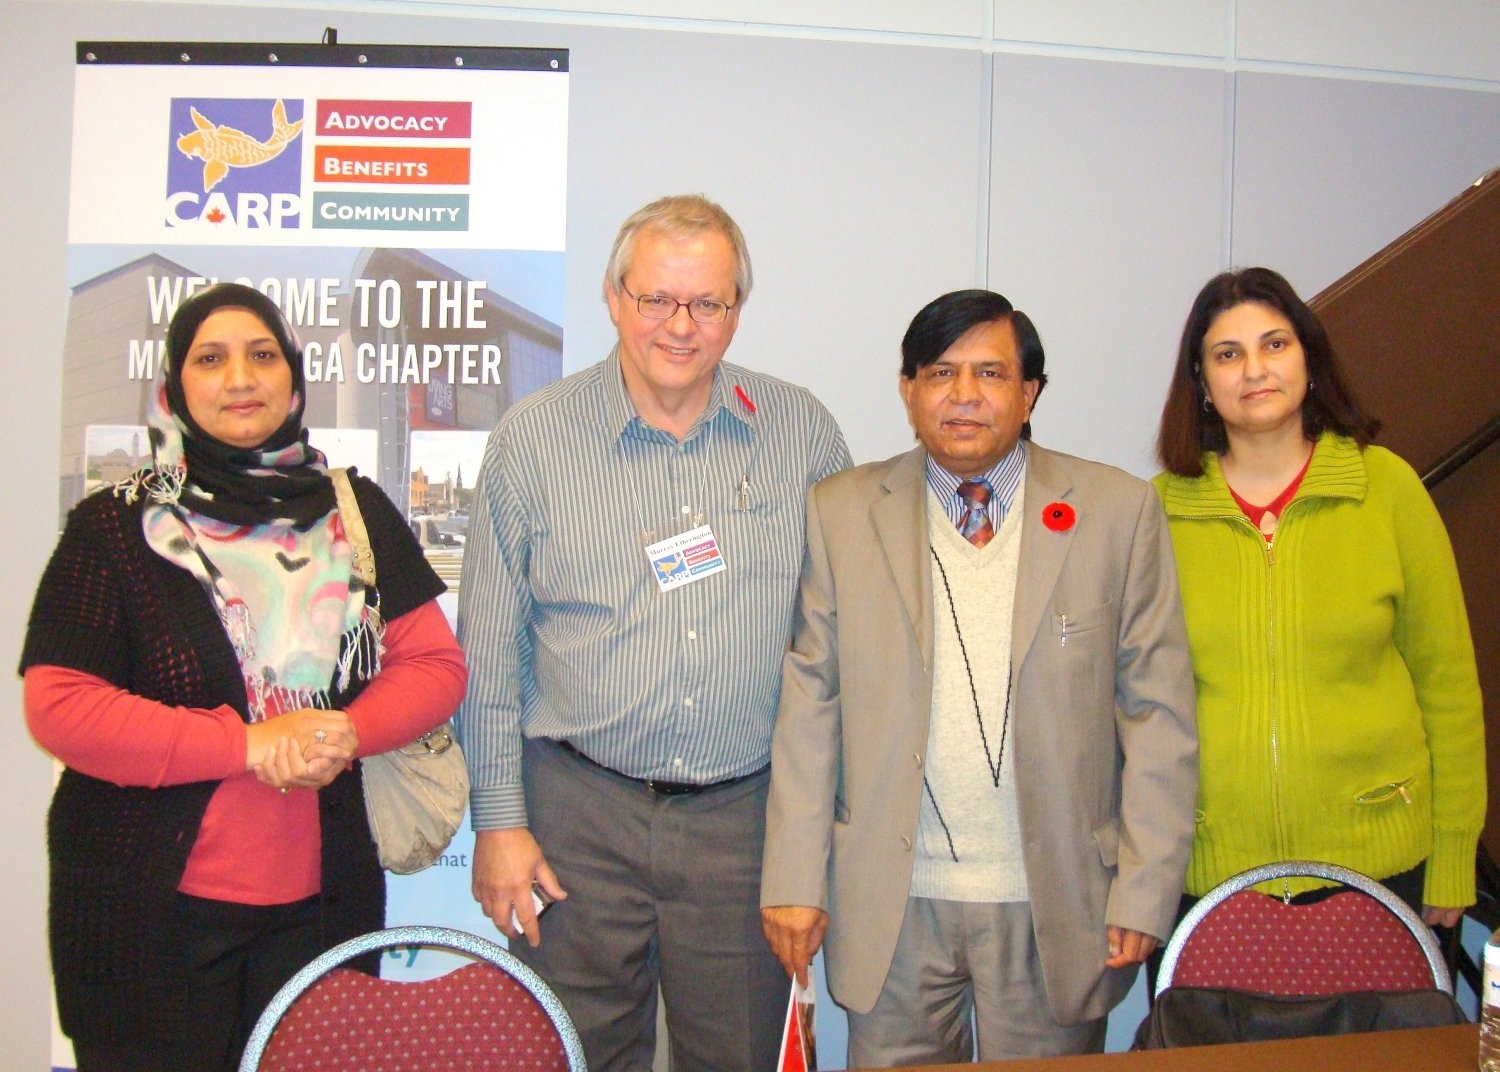 Murray Etherington Chairman CARP Mississauga Chapter and other Community Service Representatives